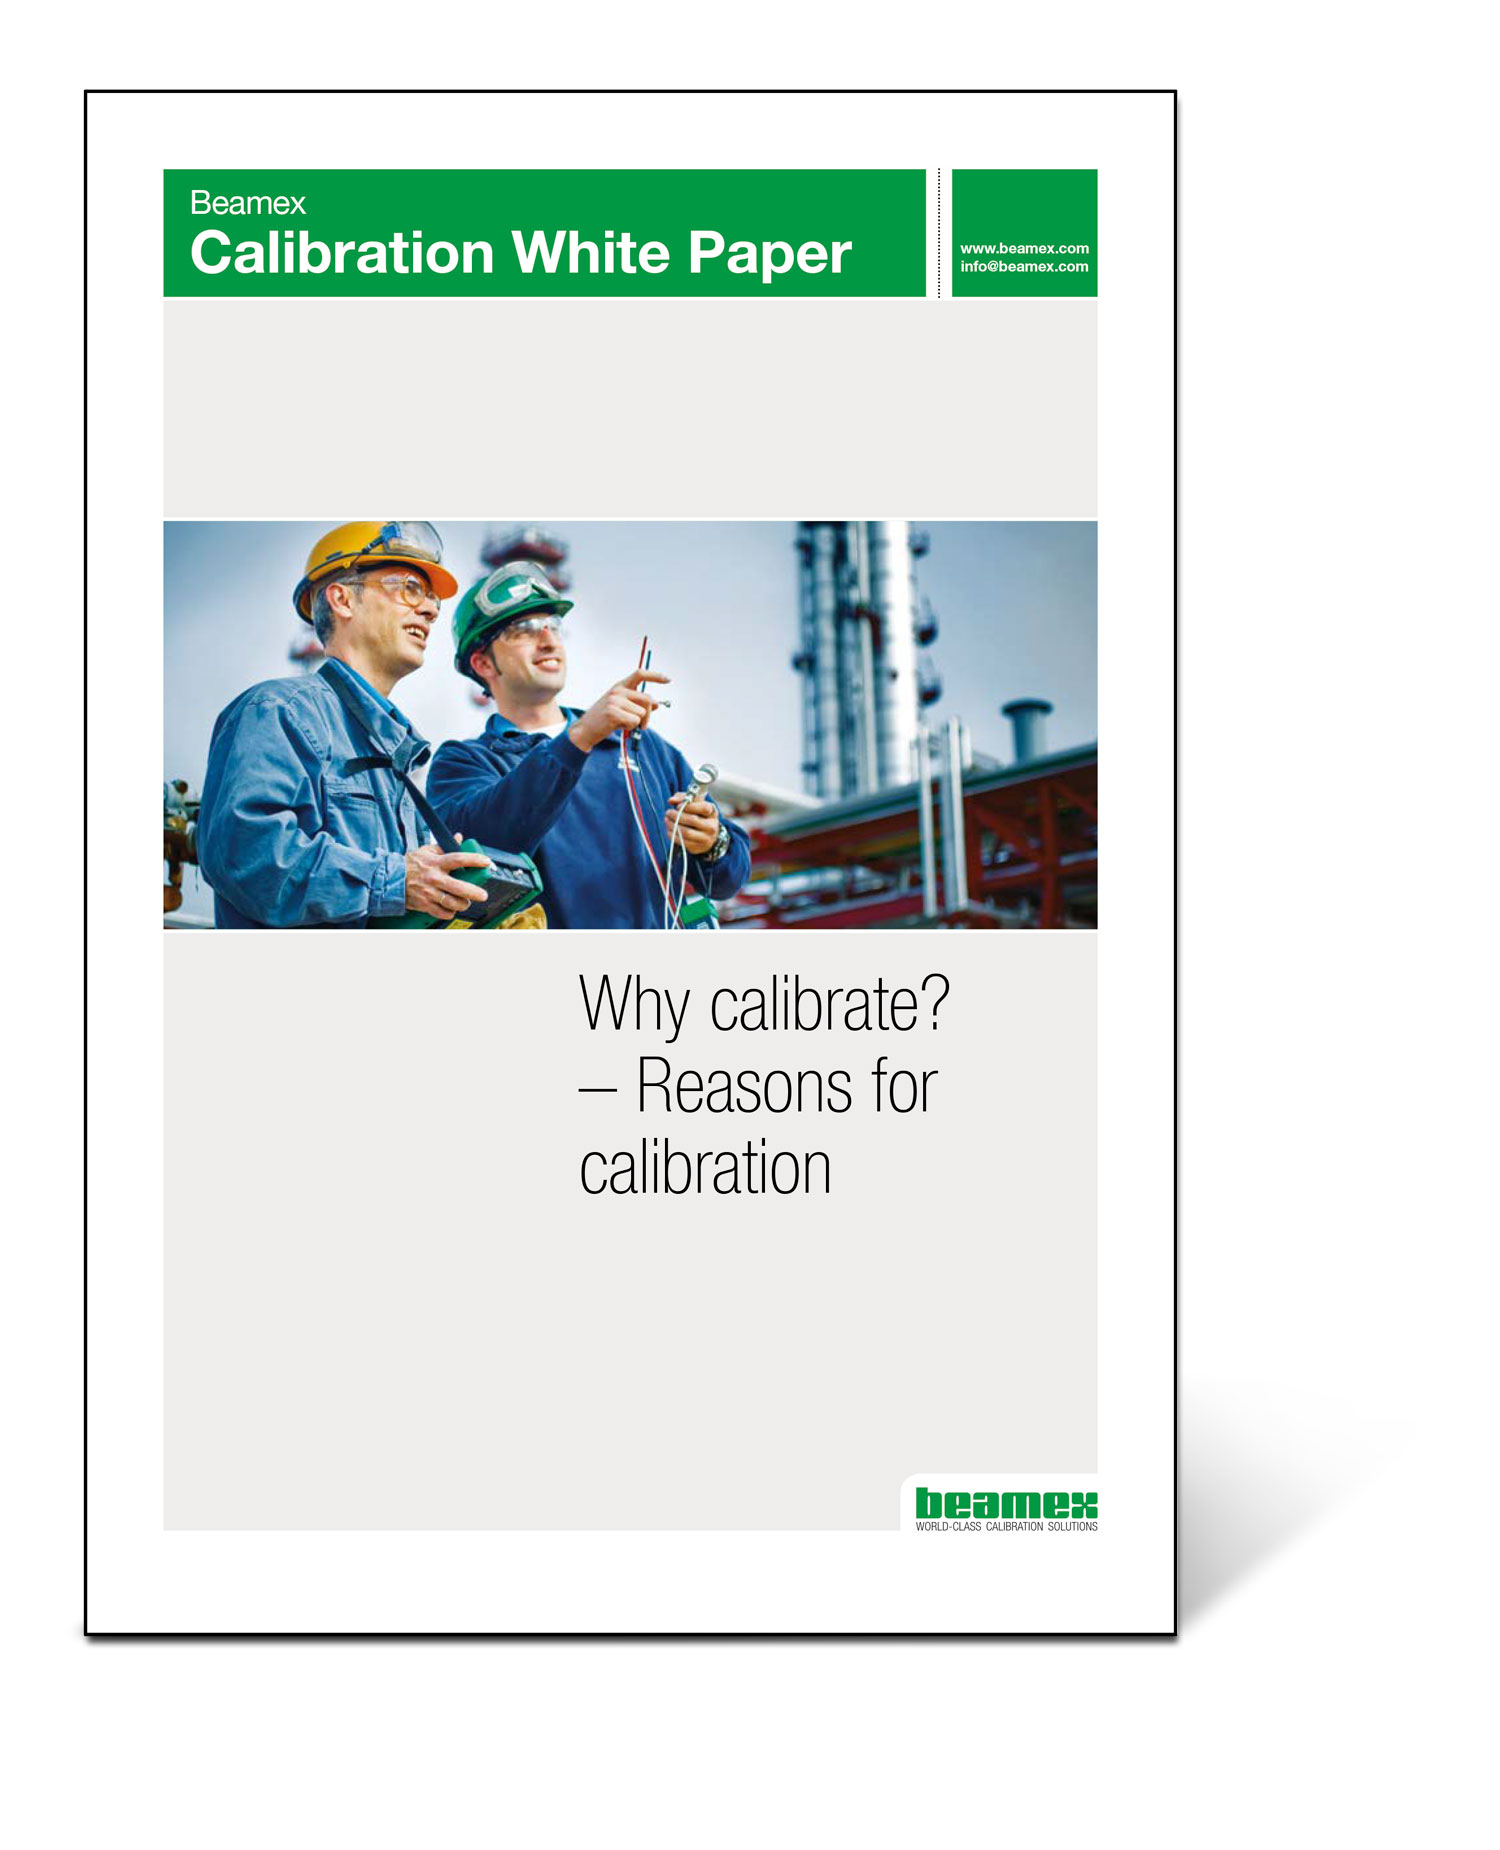 Why Calibrate - Beamex White Paper